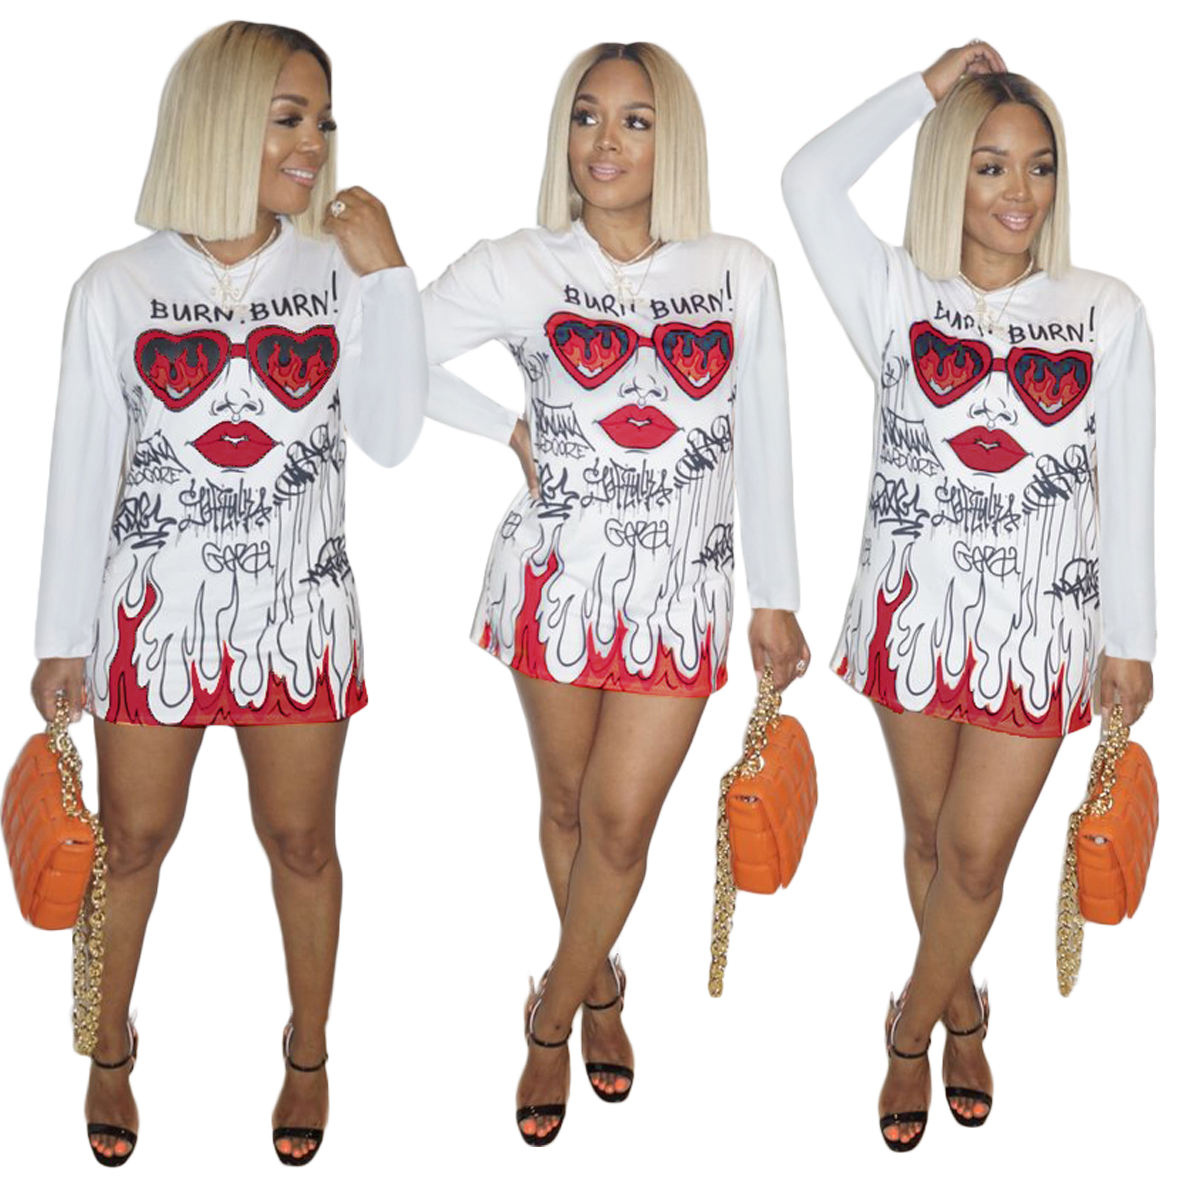 ABgirl 2021 spring new casual school girl long sleeve white Alphabet graffiti red face print o neck T shirt middle dress skirt